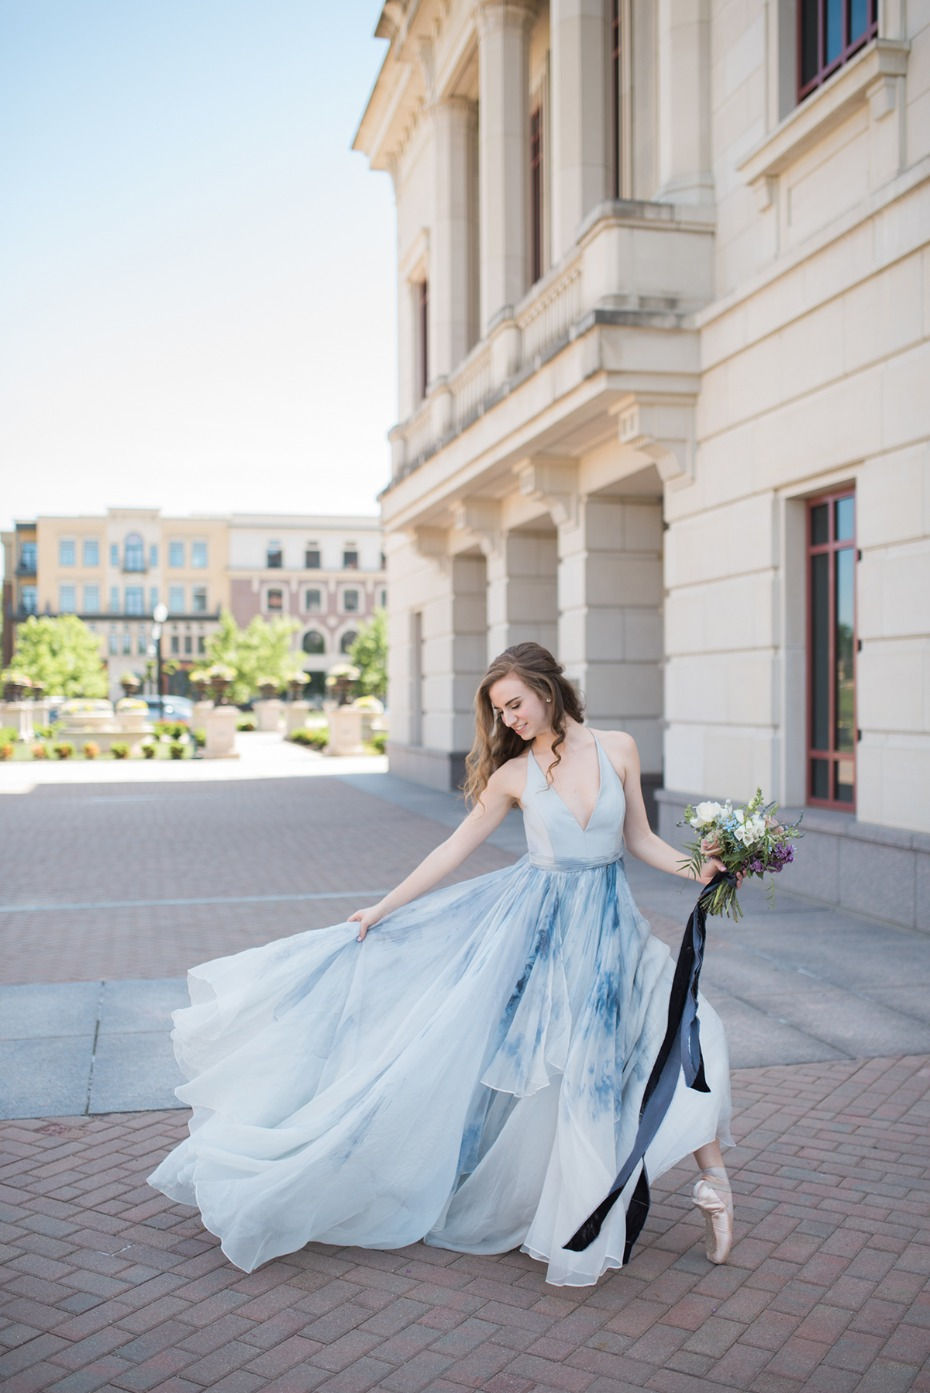 watercolor dress for your formal engagement shoot